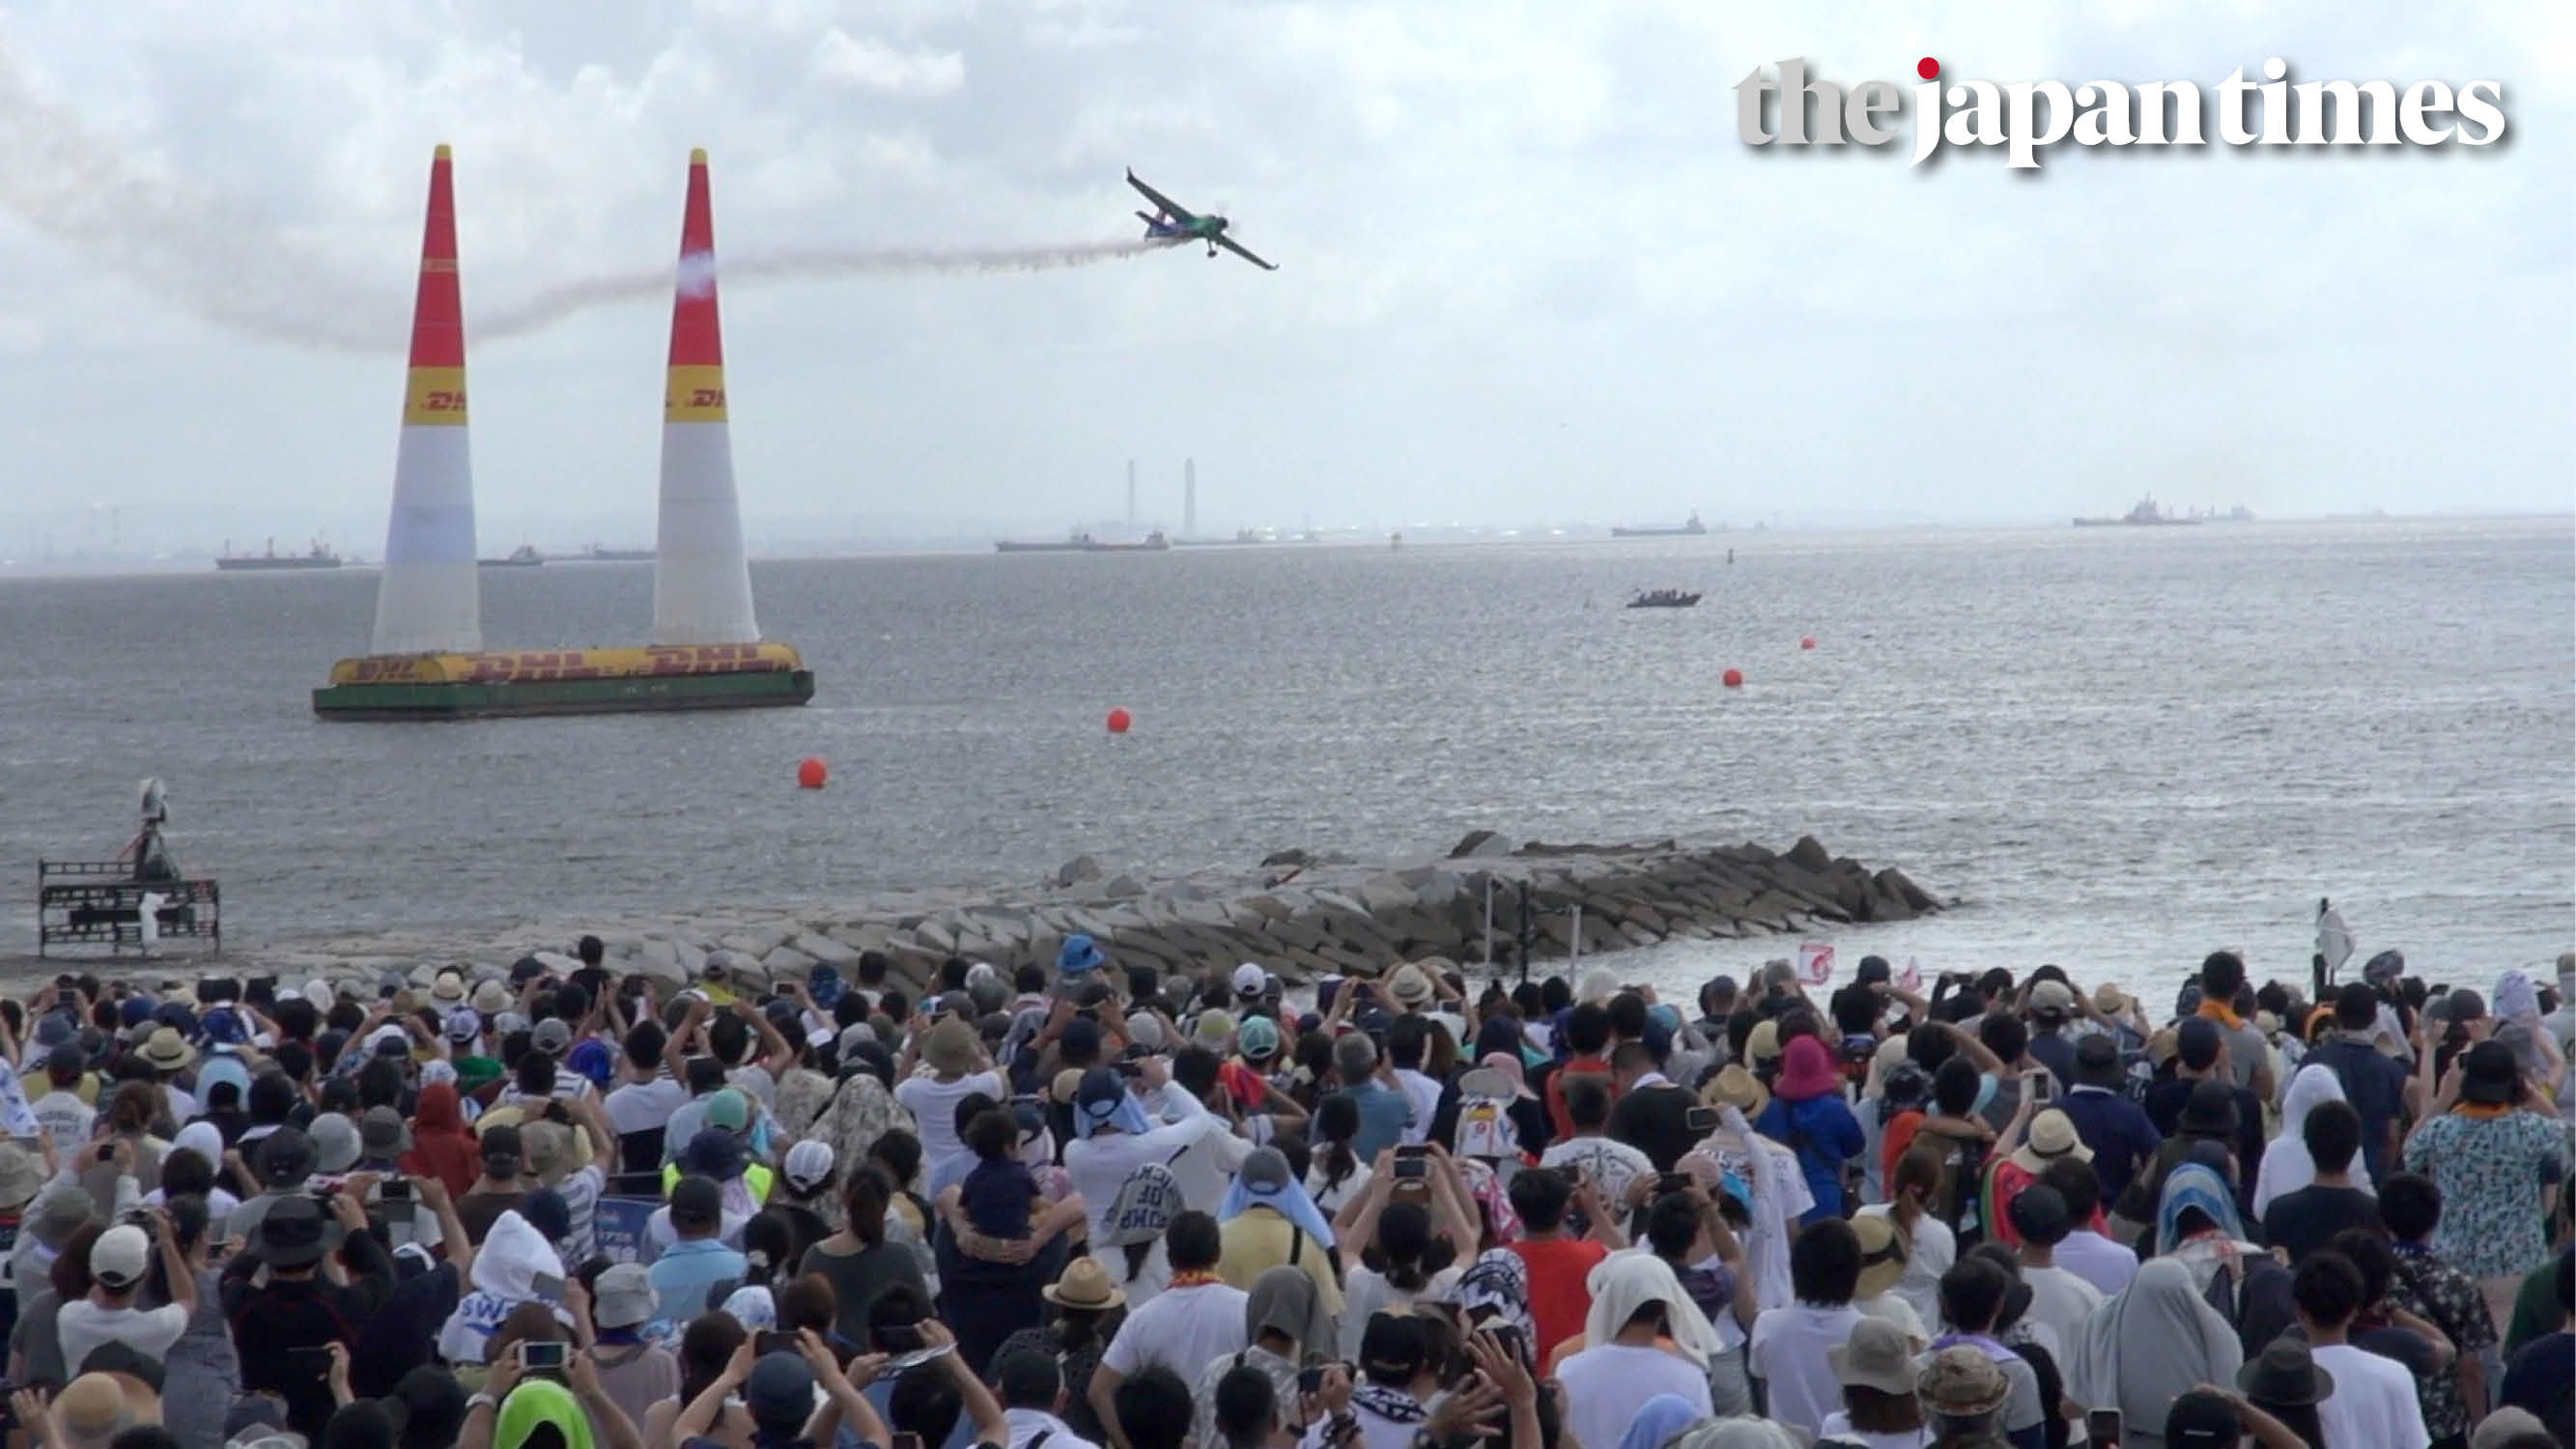 Red Bull Air Race Chiba 2019: The final aerial race championship - The Japan Times